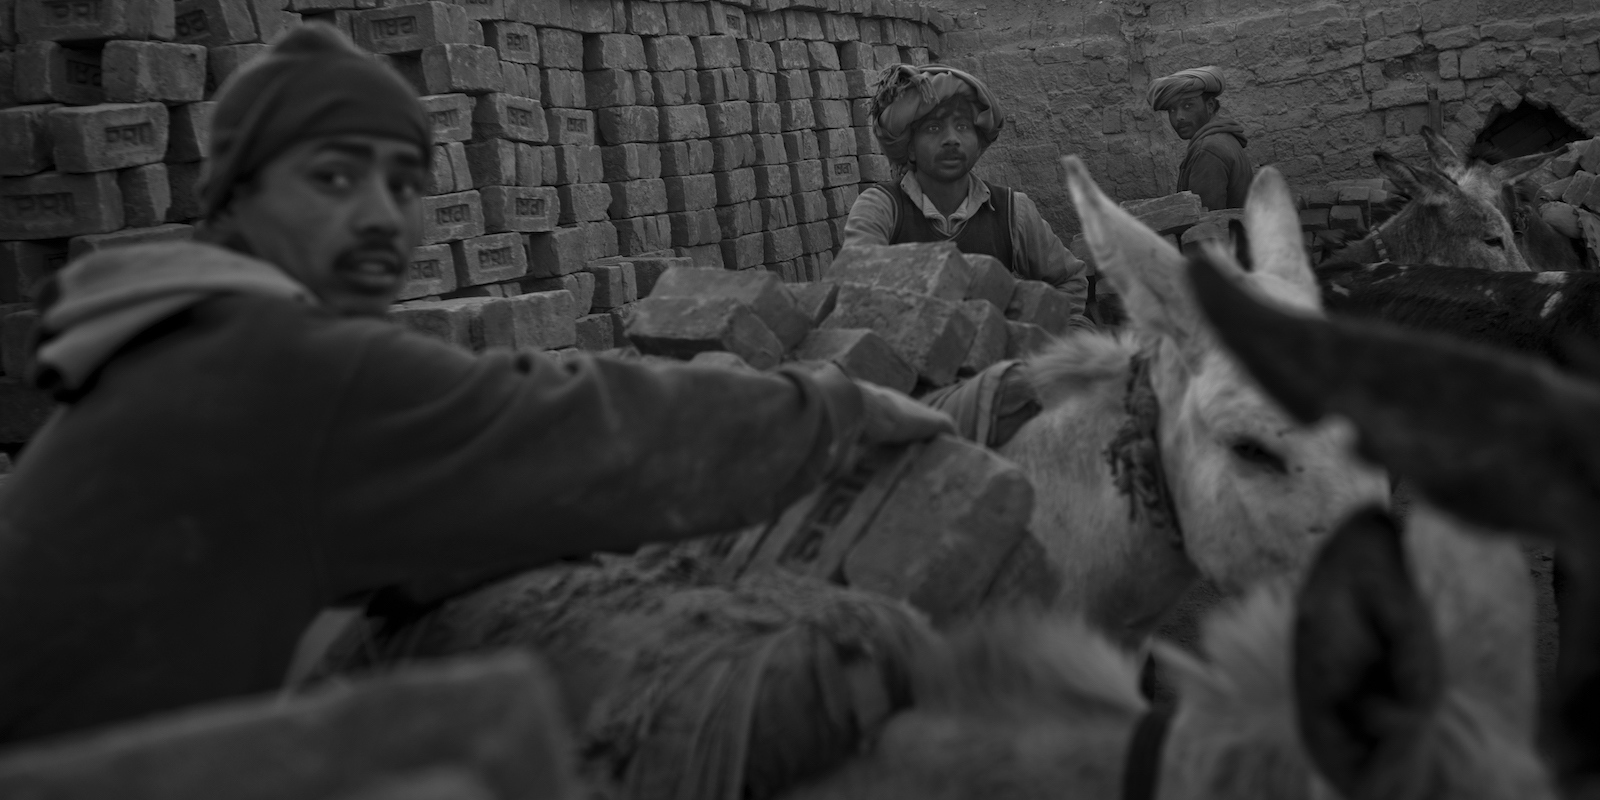 Pakistani labourers move bricks onto donkeys to transport them from a brick factory on the outskirts of Islamabad on January 11, 2012.